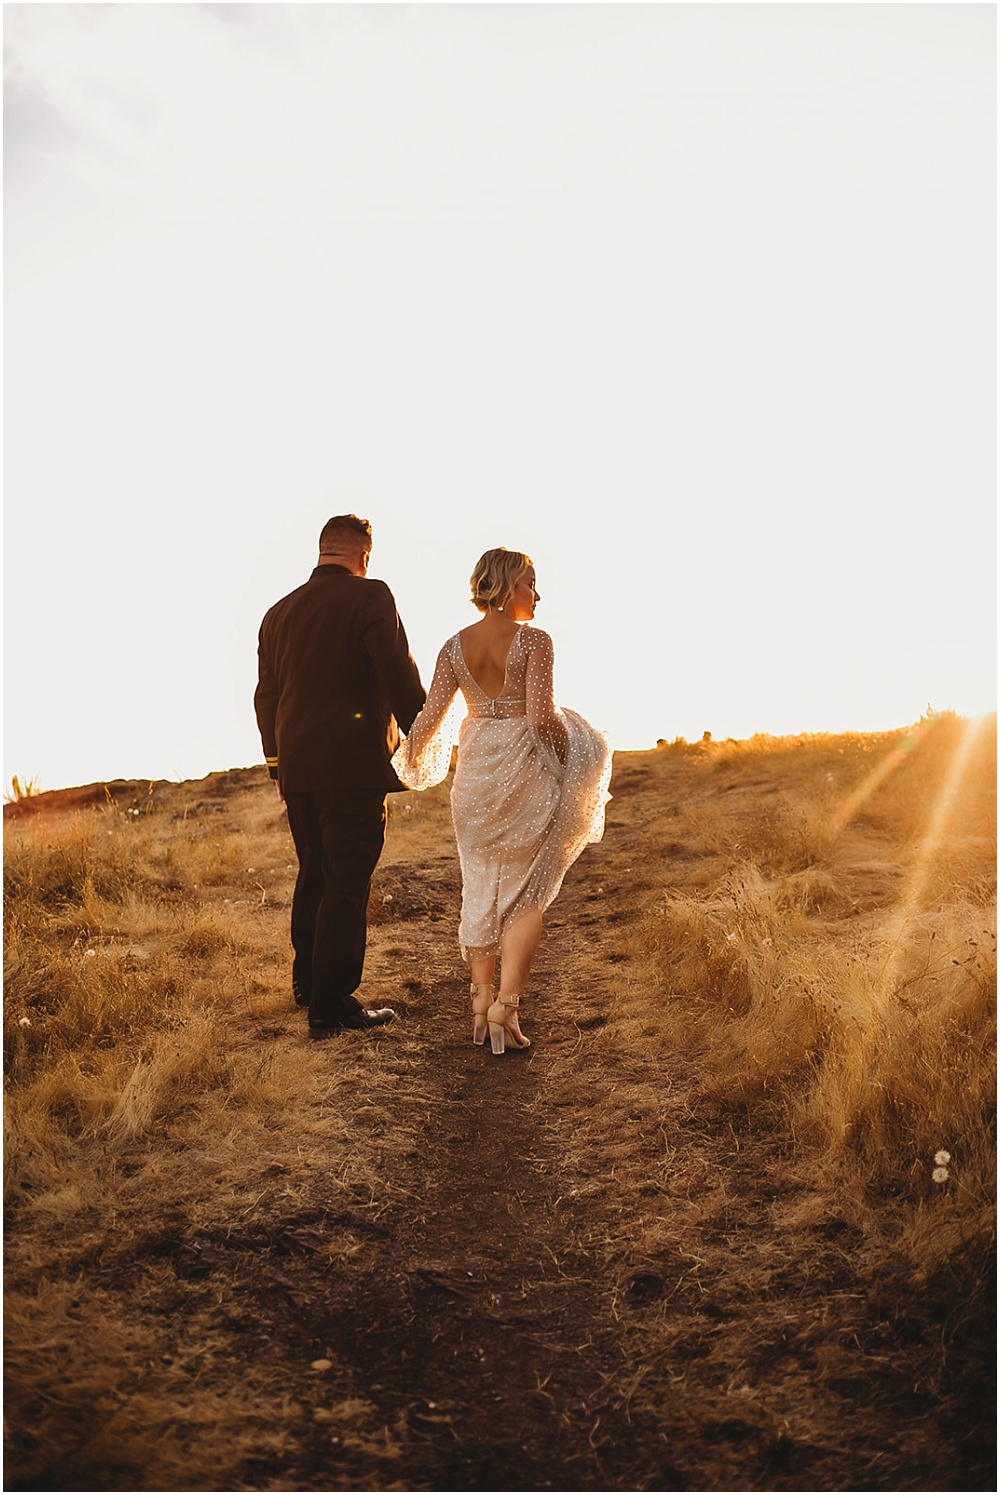 Bride and groom walking in field at sunset